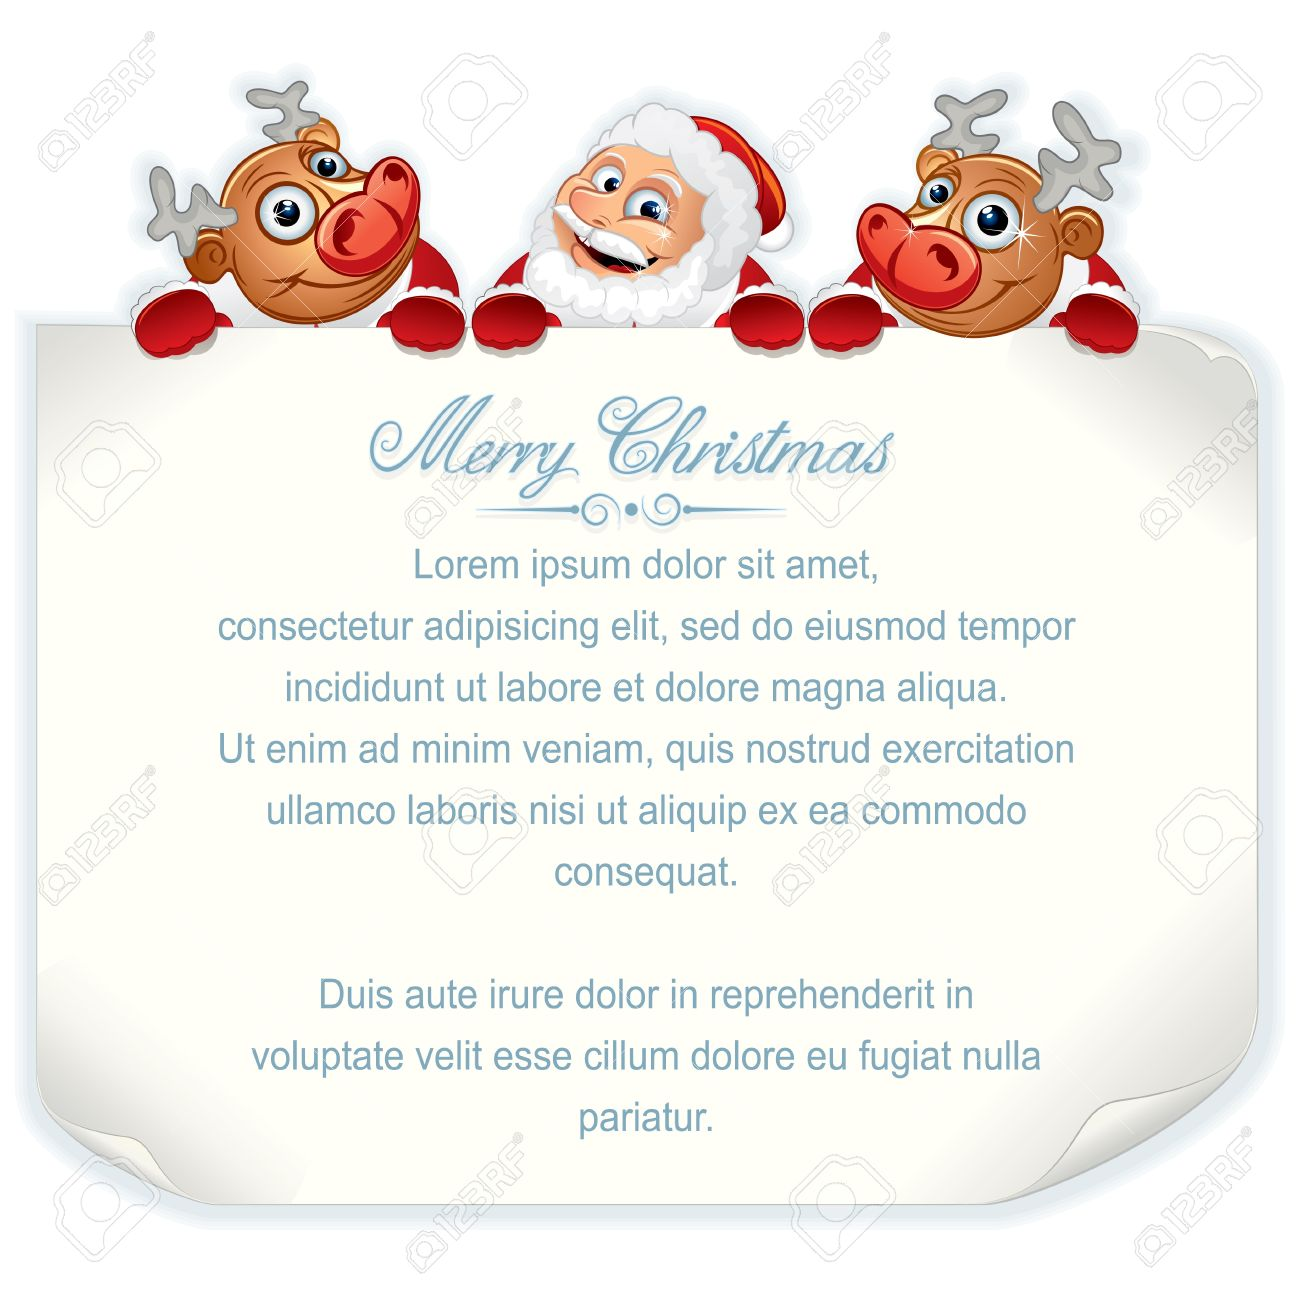 Santa Claus and Rudolph Holding Sign  Vector Background with Space for Your Text Stock Vector - 15061193